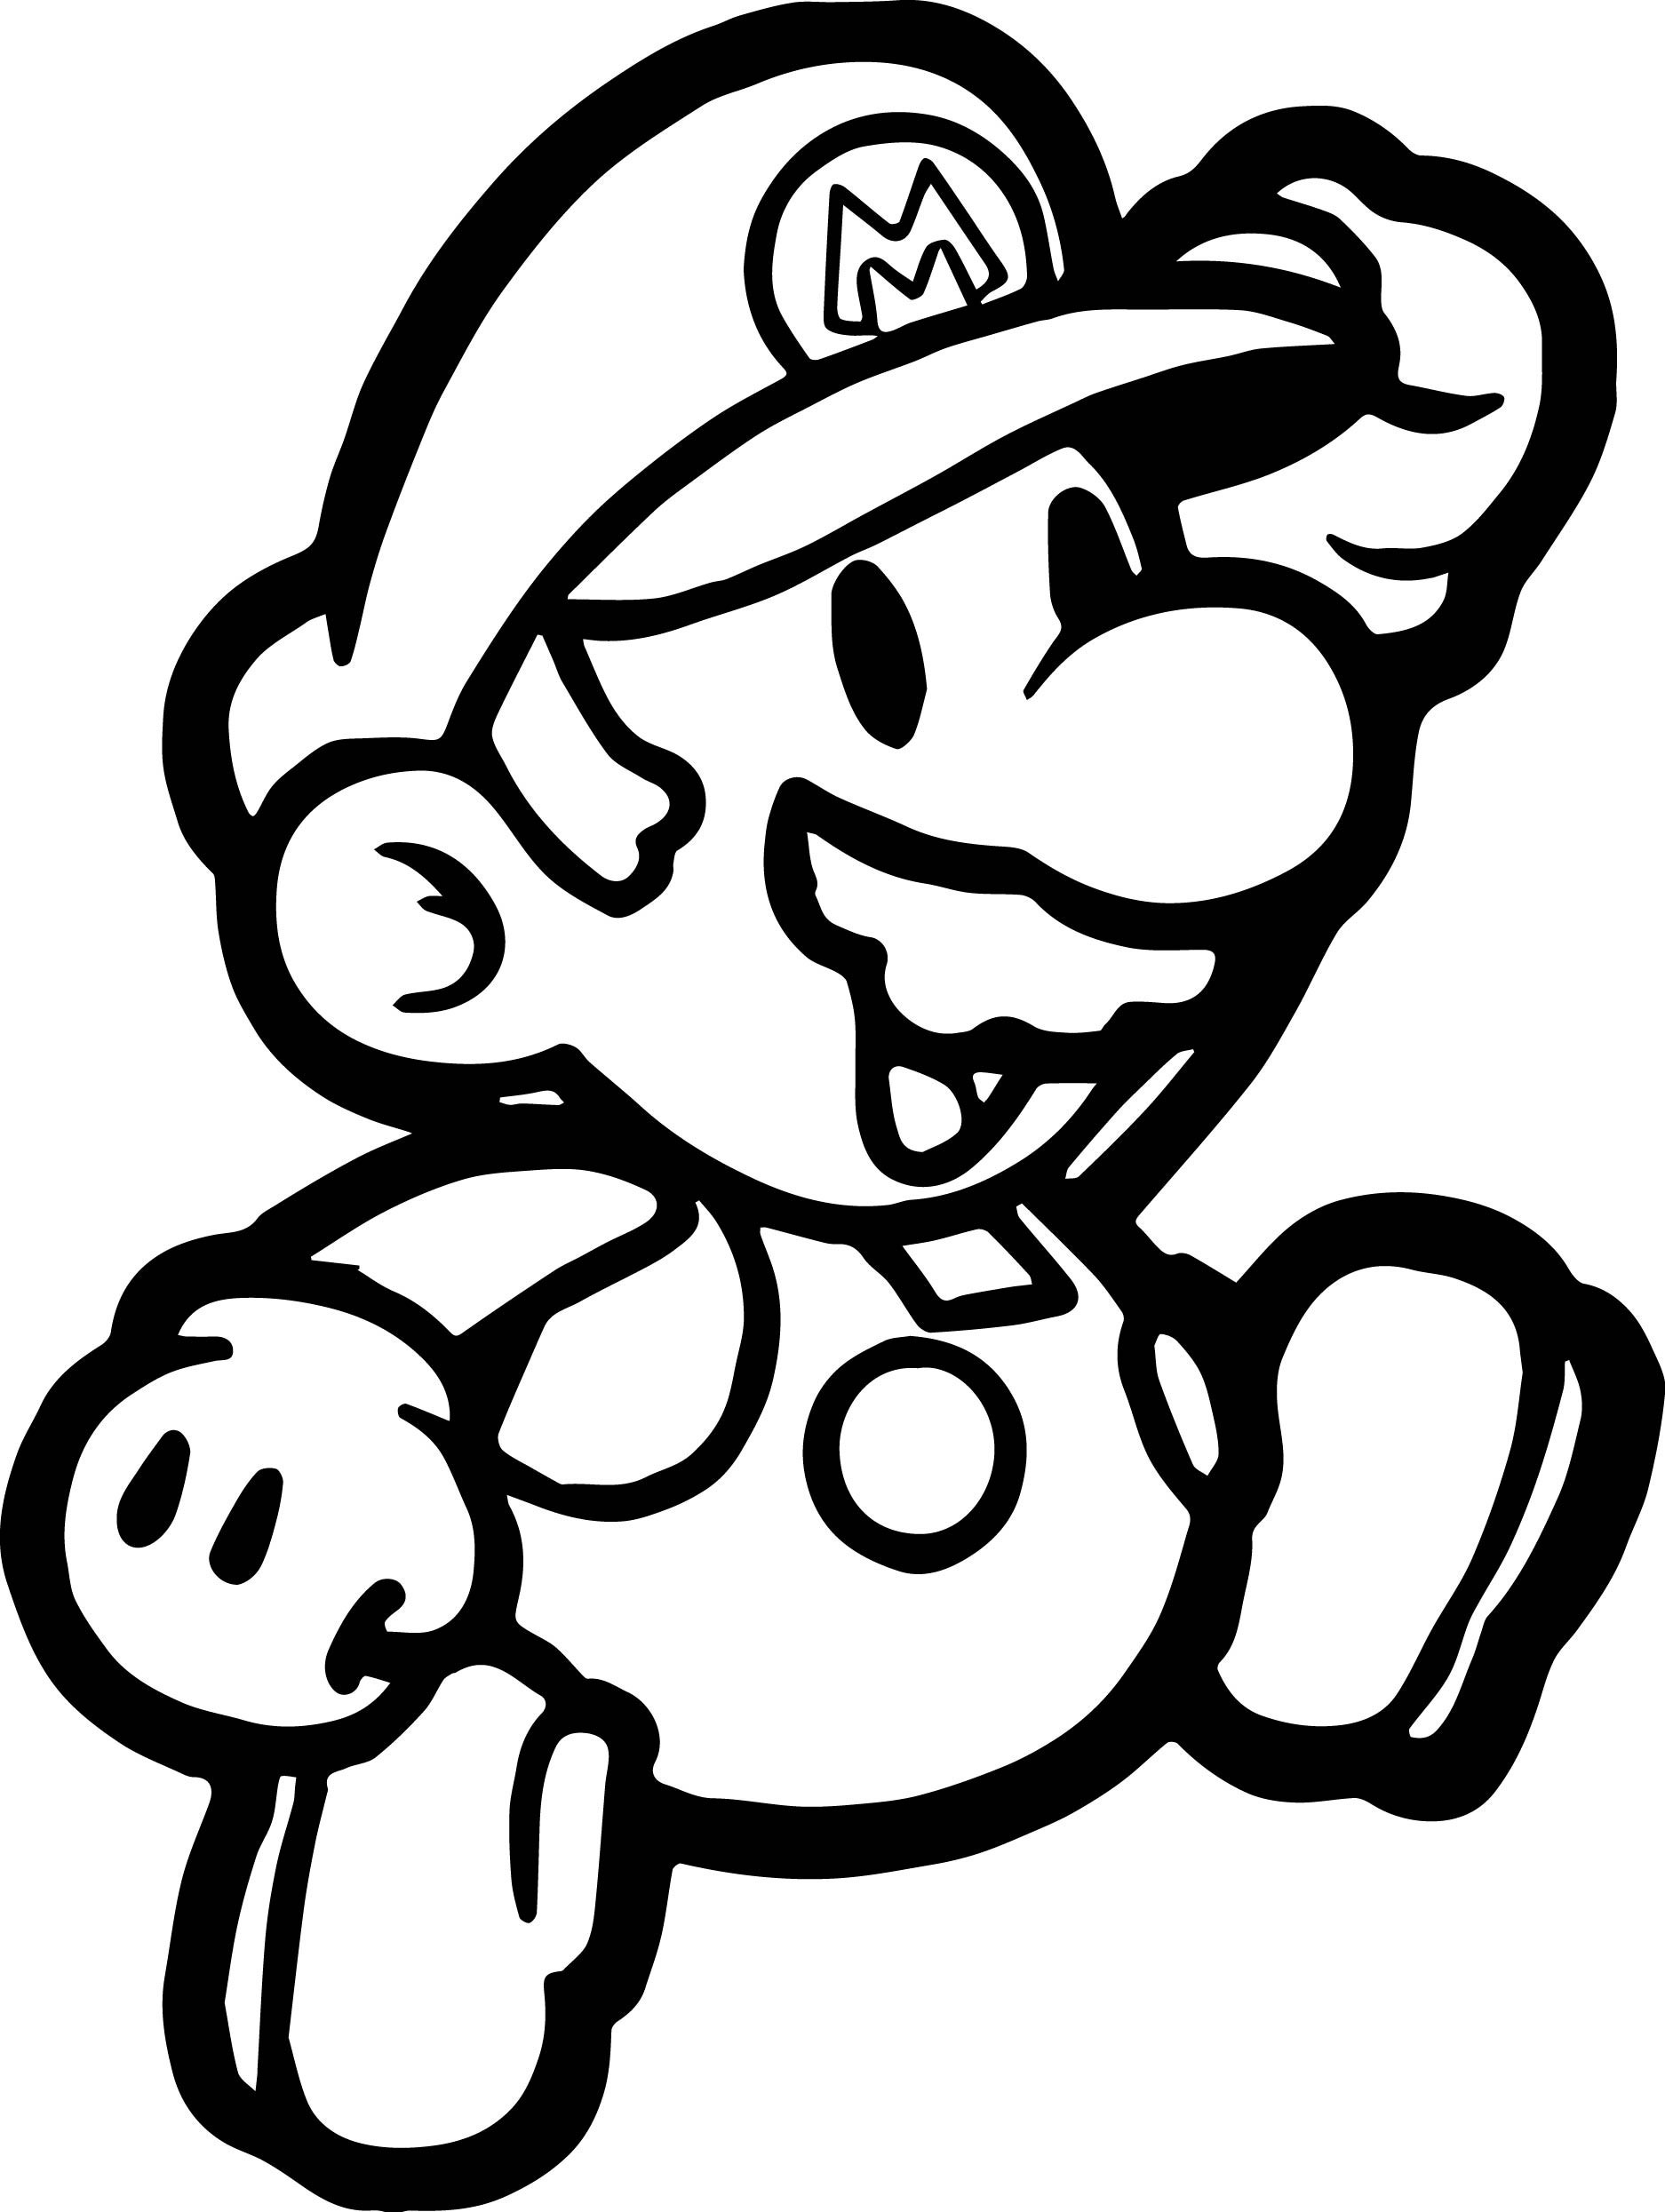 free printable super mario coloring pages mario coloring pages themes best apps for kids pages printable super coloring mario free